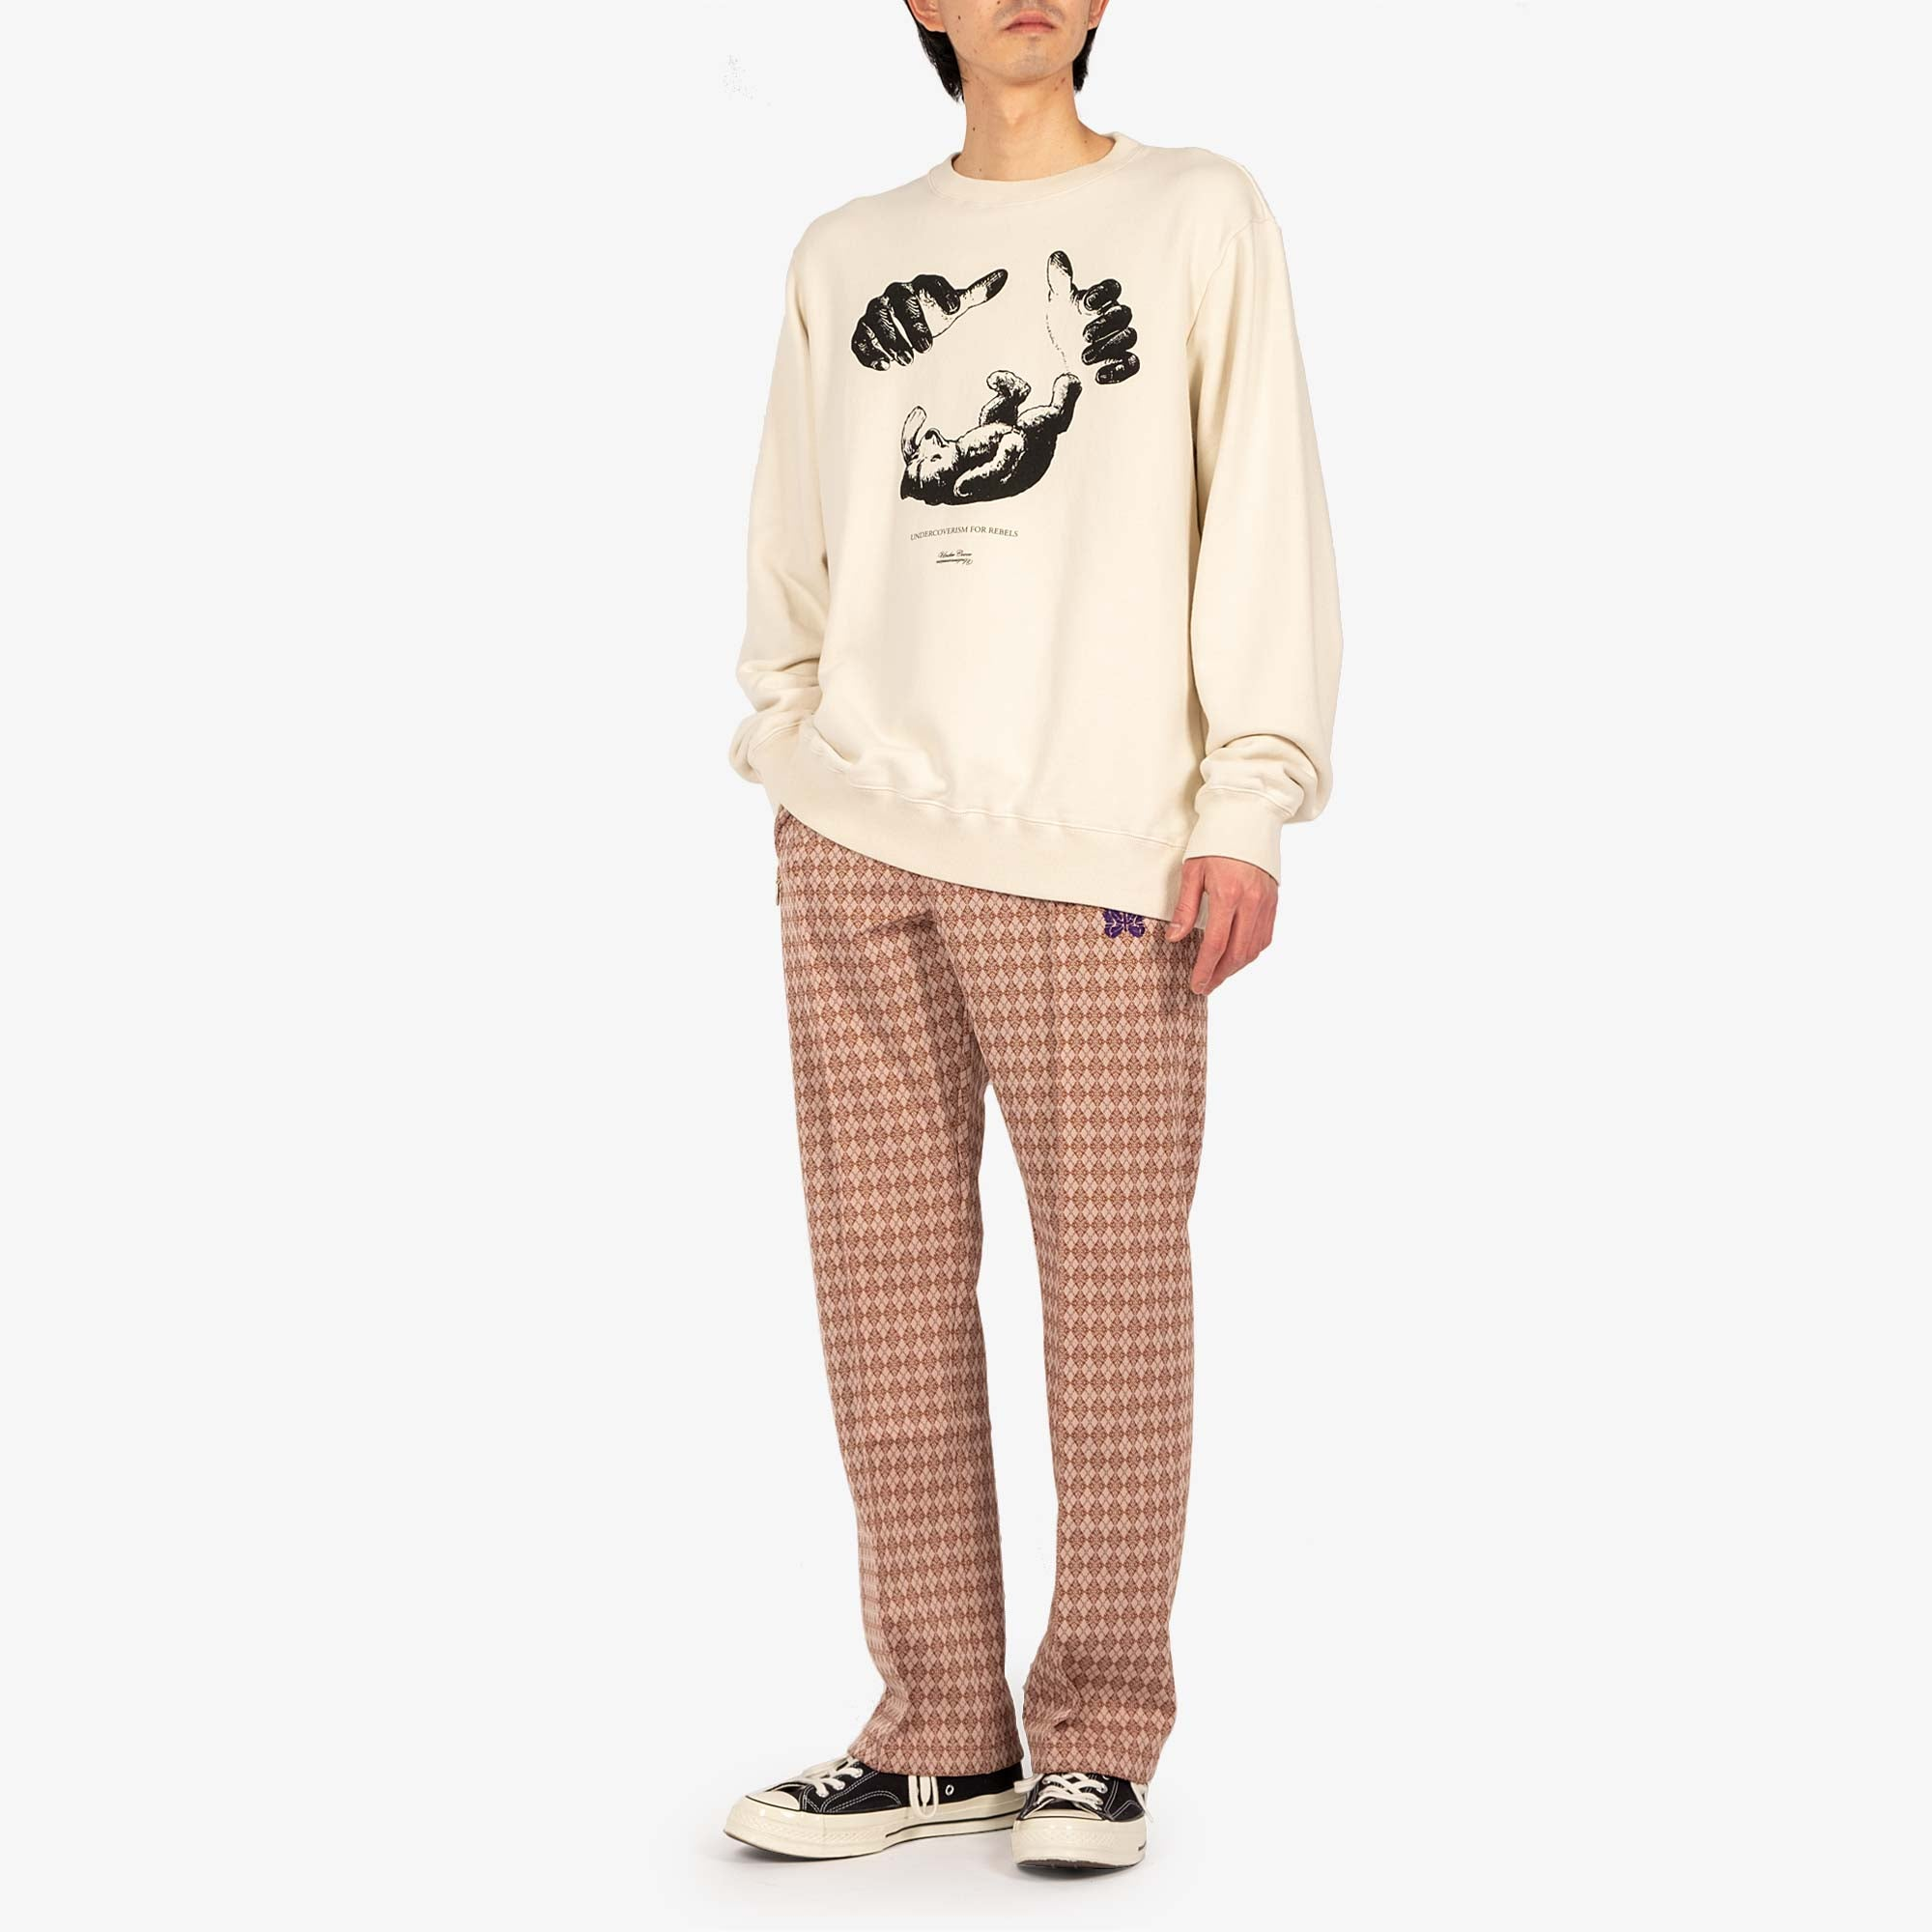 Undercover Teddy Sweat UC2A4893-6 - Ivory 3